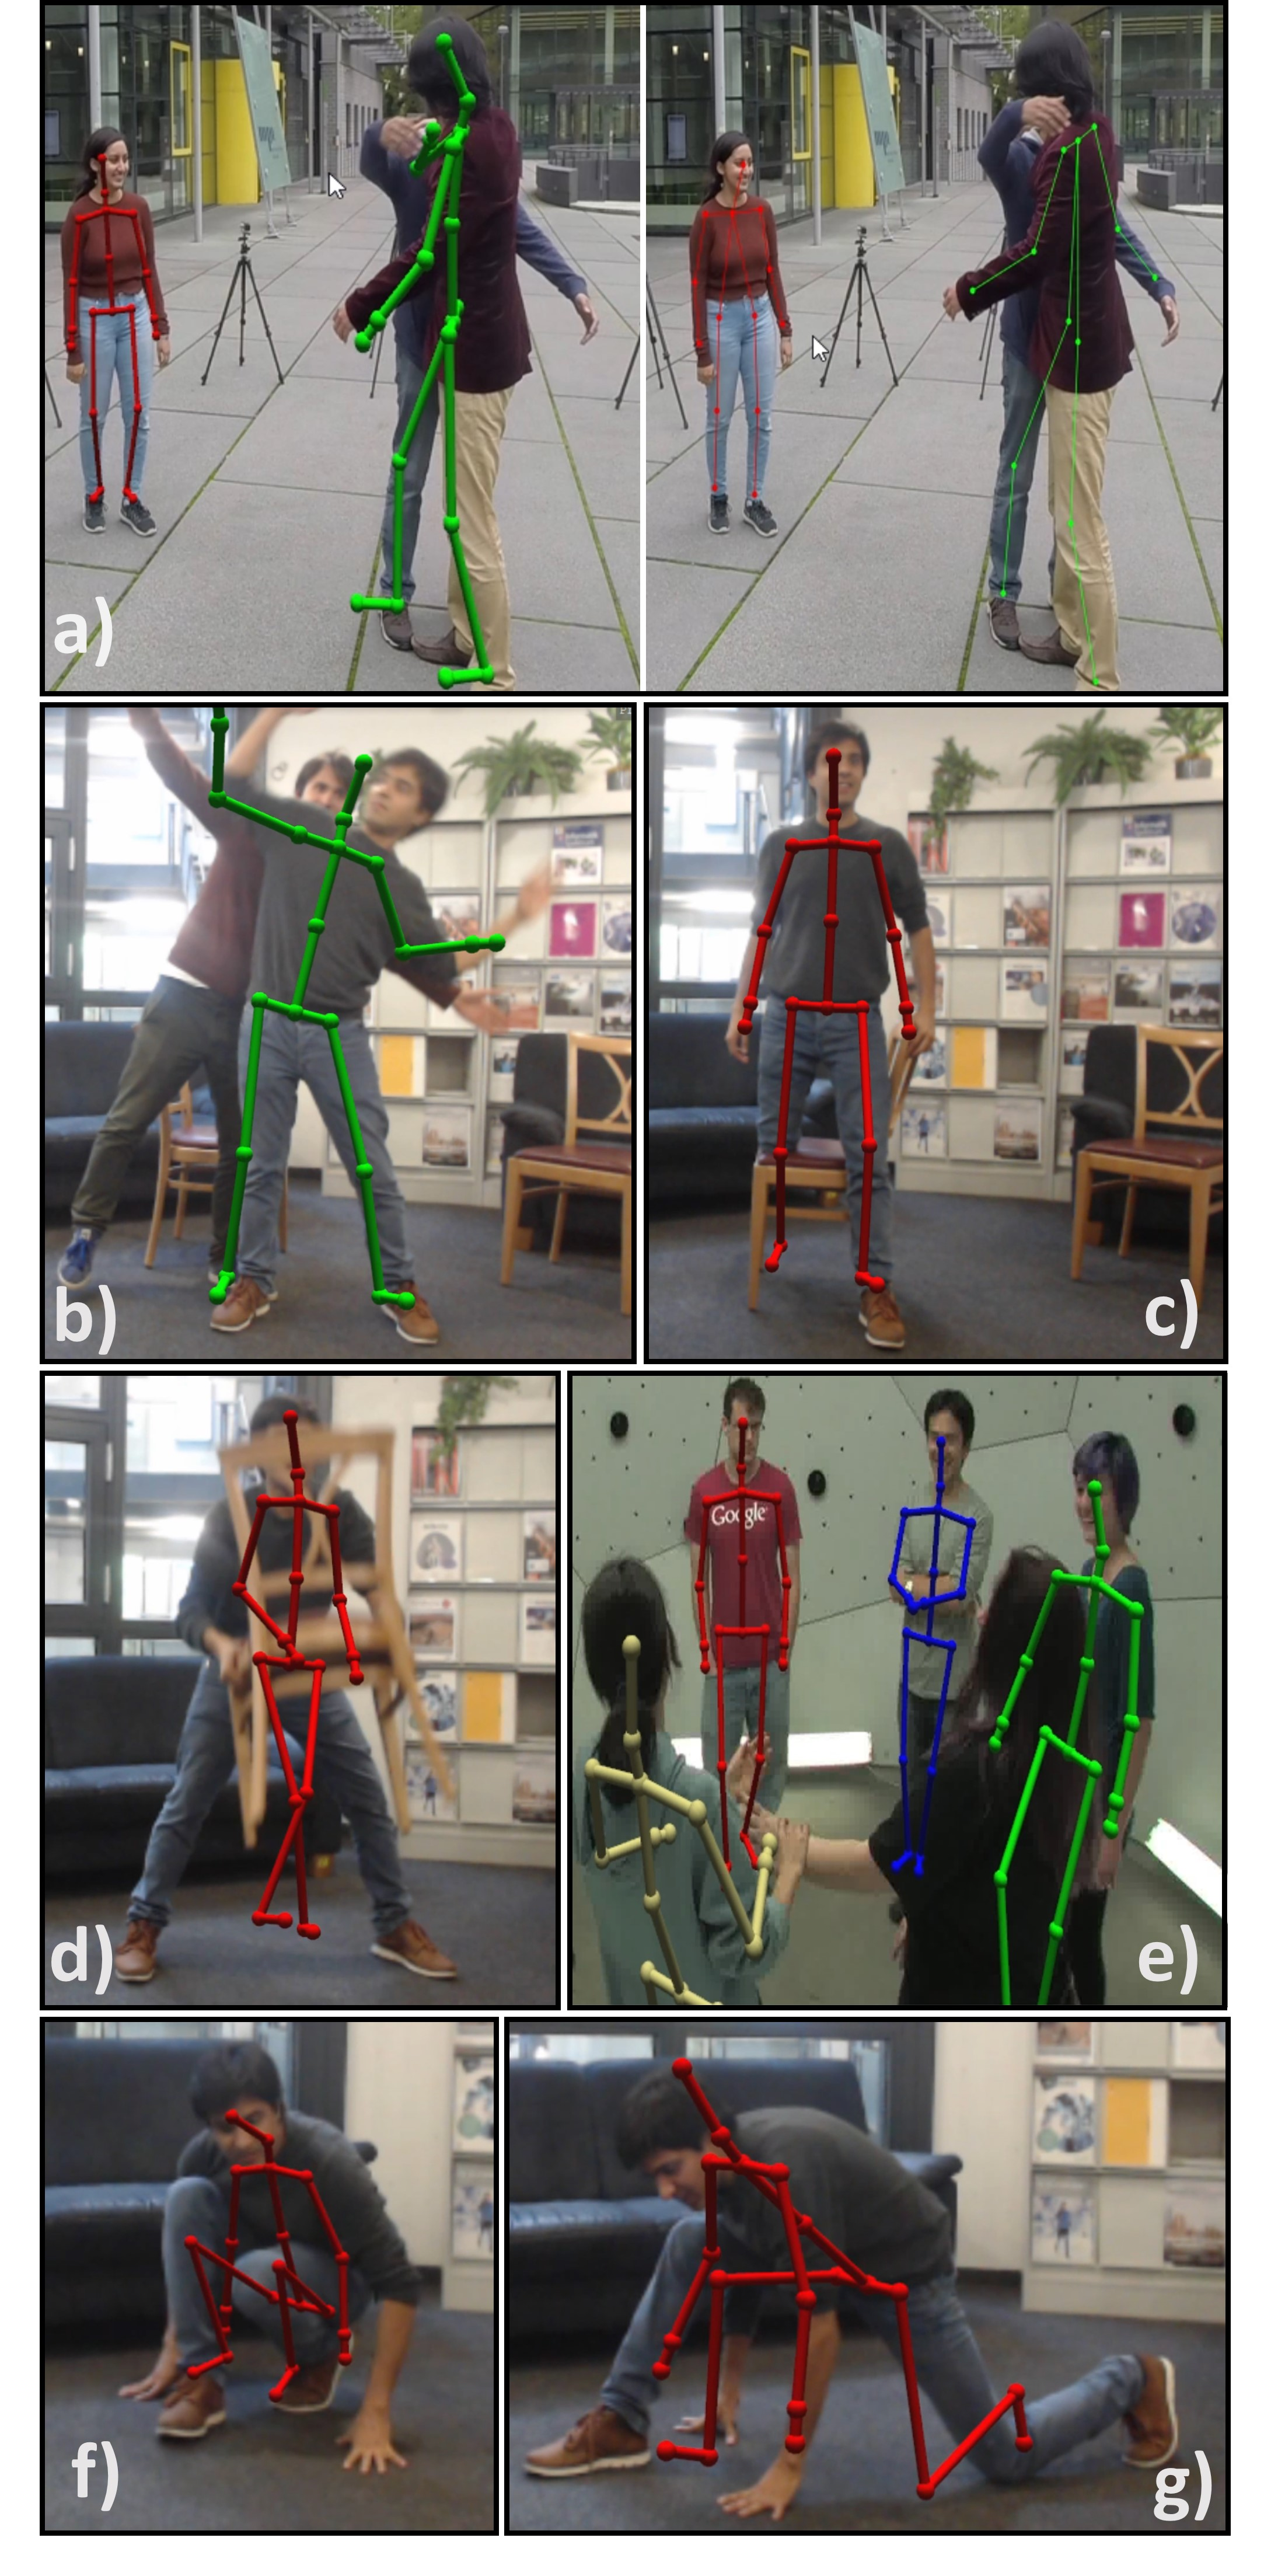 a),c) 3D pose inaccuracy due to 2D pose limb confusion, b) Person not detected due to neck occlusion, d),e) 3D misprediction and person undetected under extreme occlusion, f),g) 2D-3D pose alignment becomes unreliable in cases with significant self occlusion